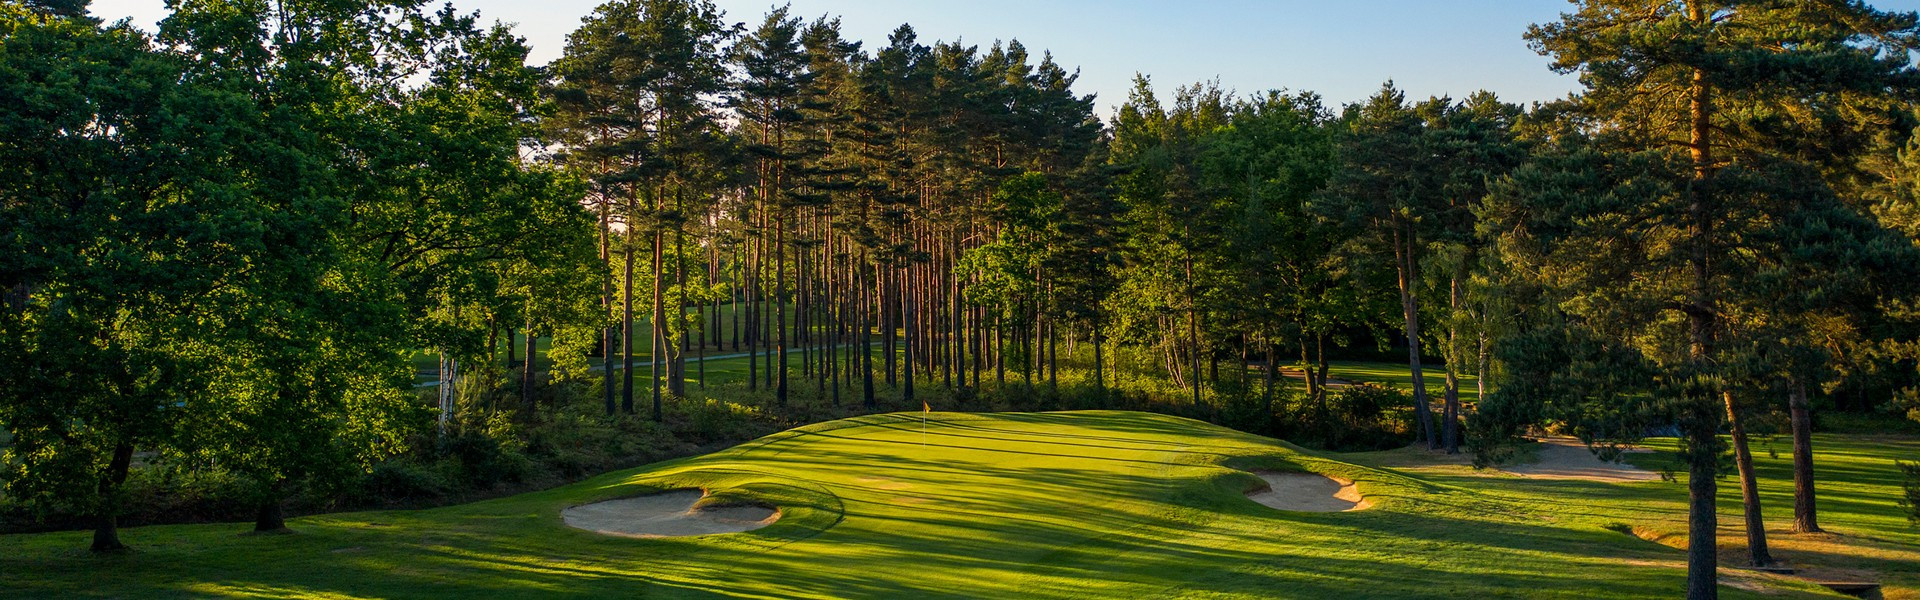 The 2022 PGA Cup is scheduled to be played at Foxhills Club and Resort in England ©Foxhills Club and Resort